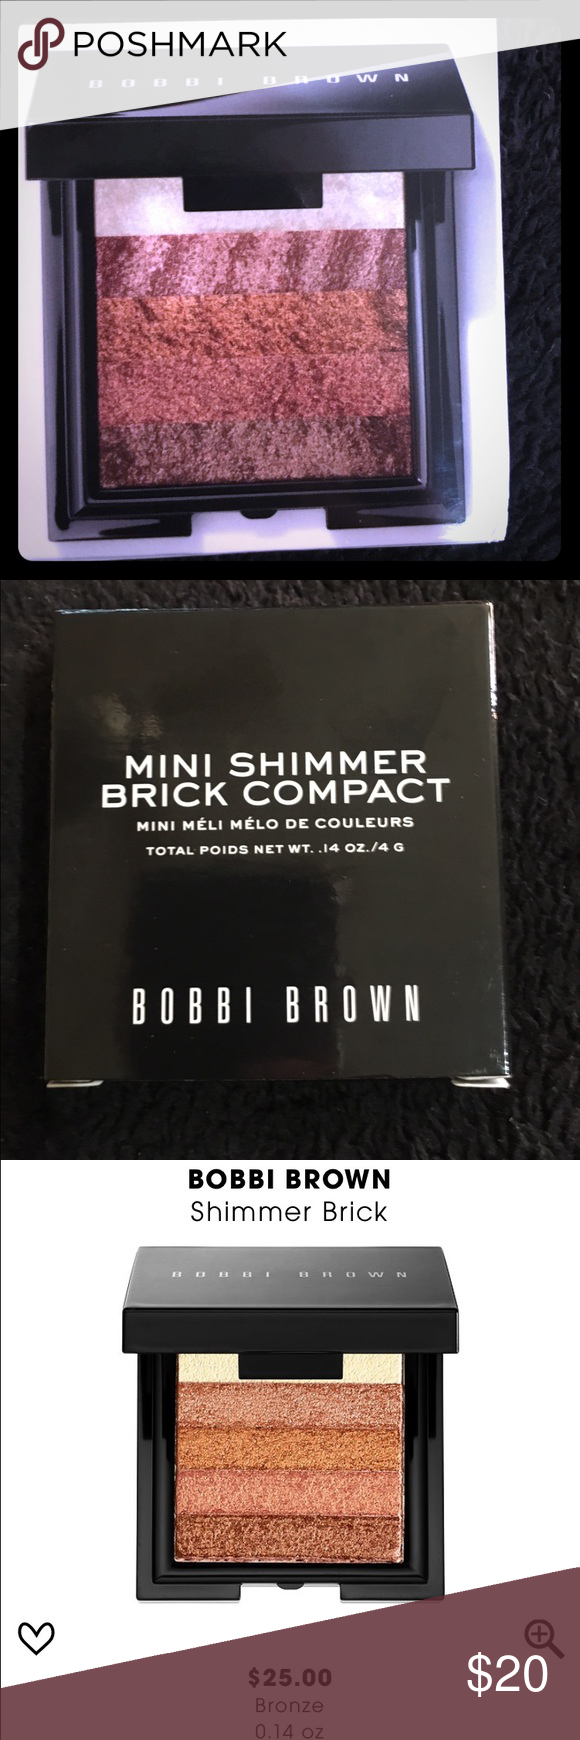 Bobbi Brown Shimmer Brick Compact Brand-new, never opened, Bobbi Brown Shimmer Brick Compact in Bronze What it is:  An iconic highlighter that instantly delivers soft-focus, lit-from-within color with a flattering combination of pale, golden, and rosy pinks.   What it does:  Achieve a glowing hint of shimmer with Bobbi Brown's Shimmer Brick. This compact features five shades infused with superfine pigments that reflect radiance and light. Just dust all five shades lightly on the top of…